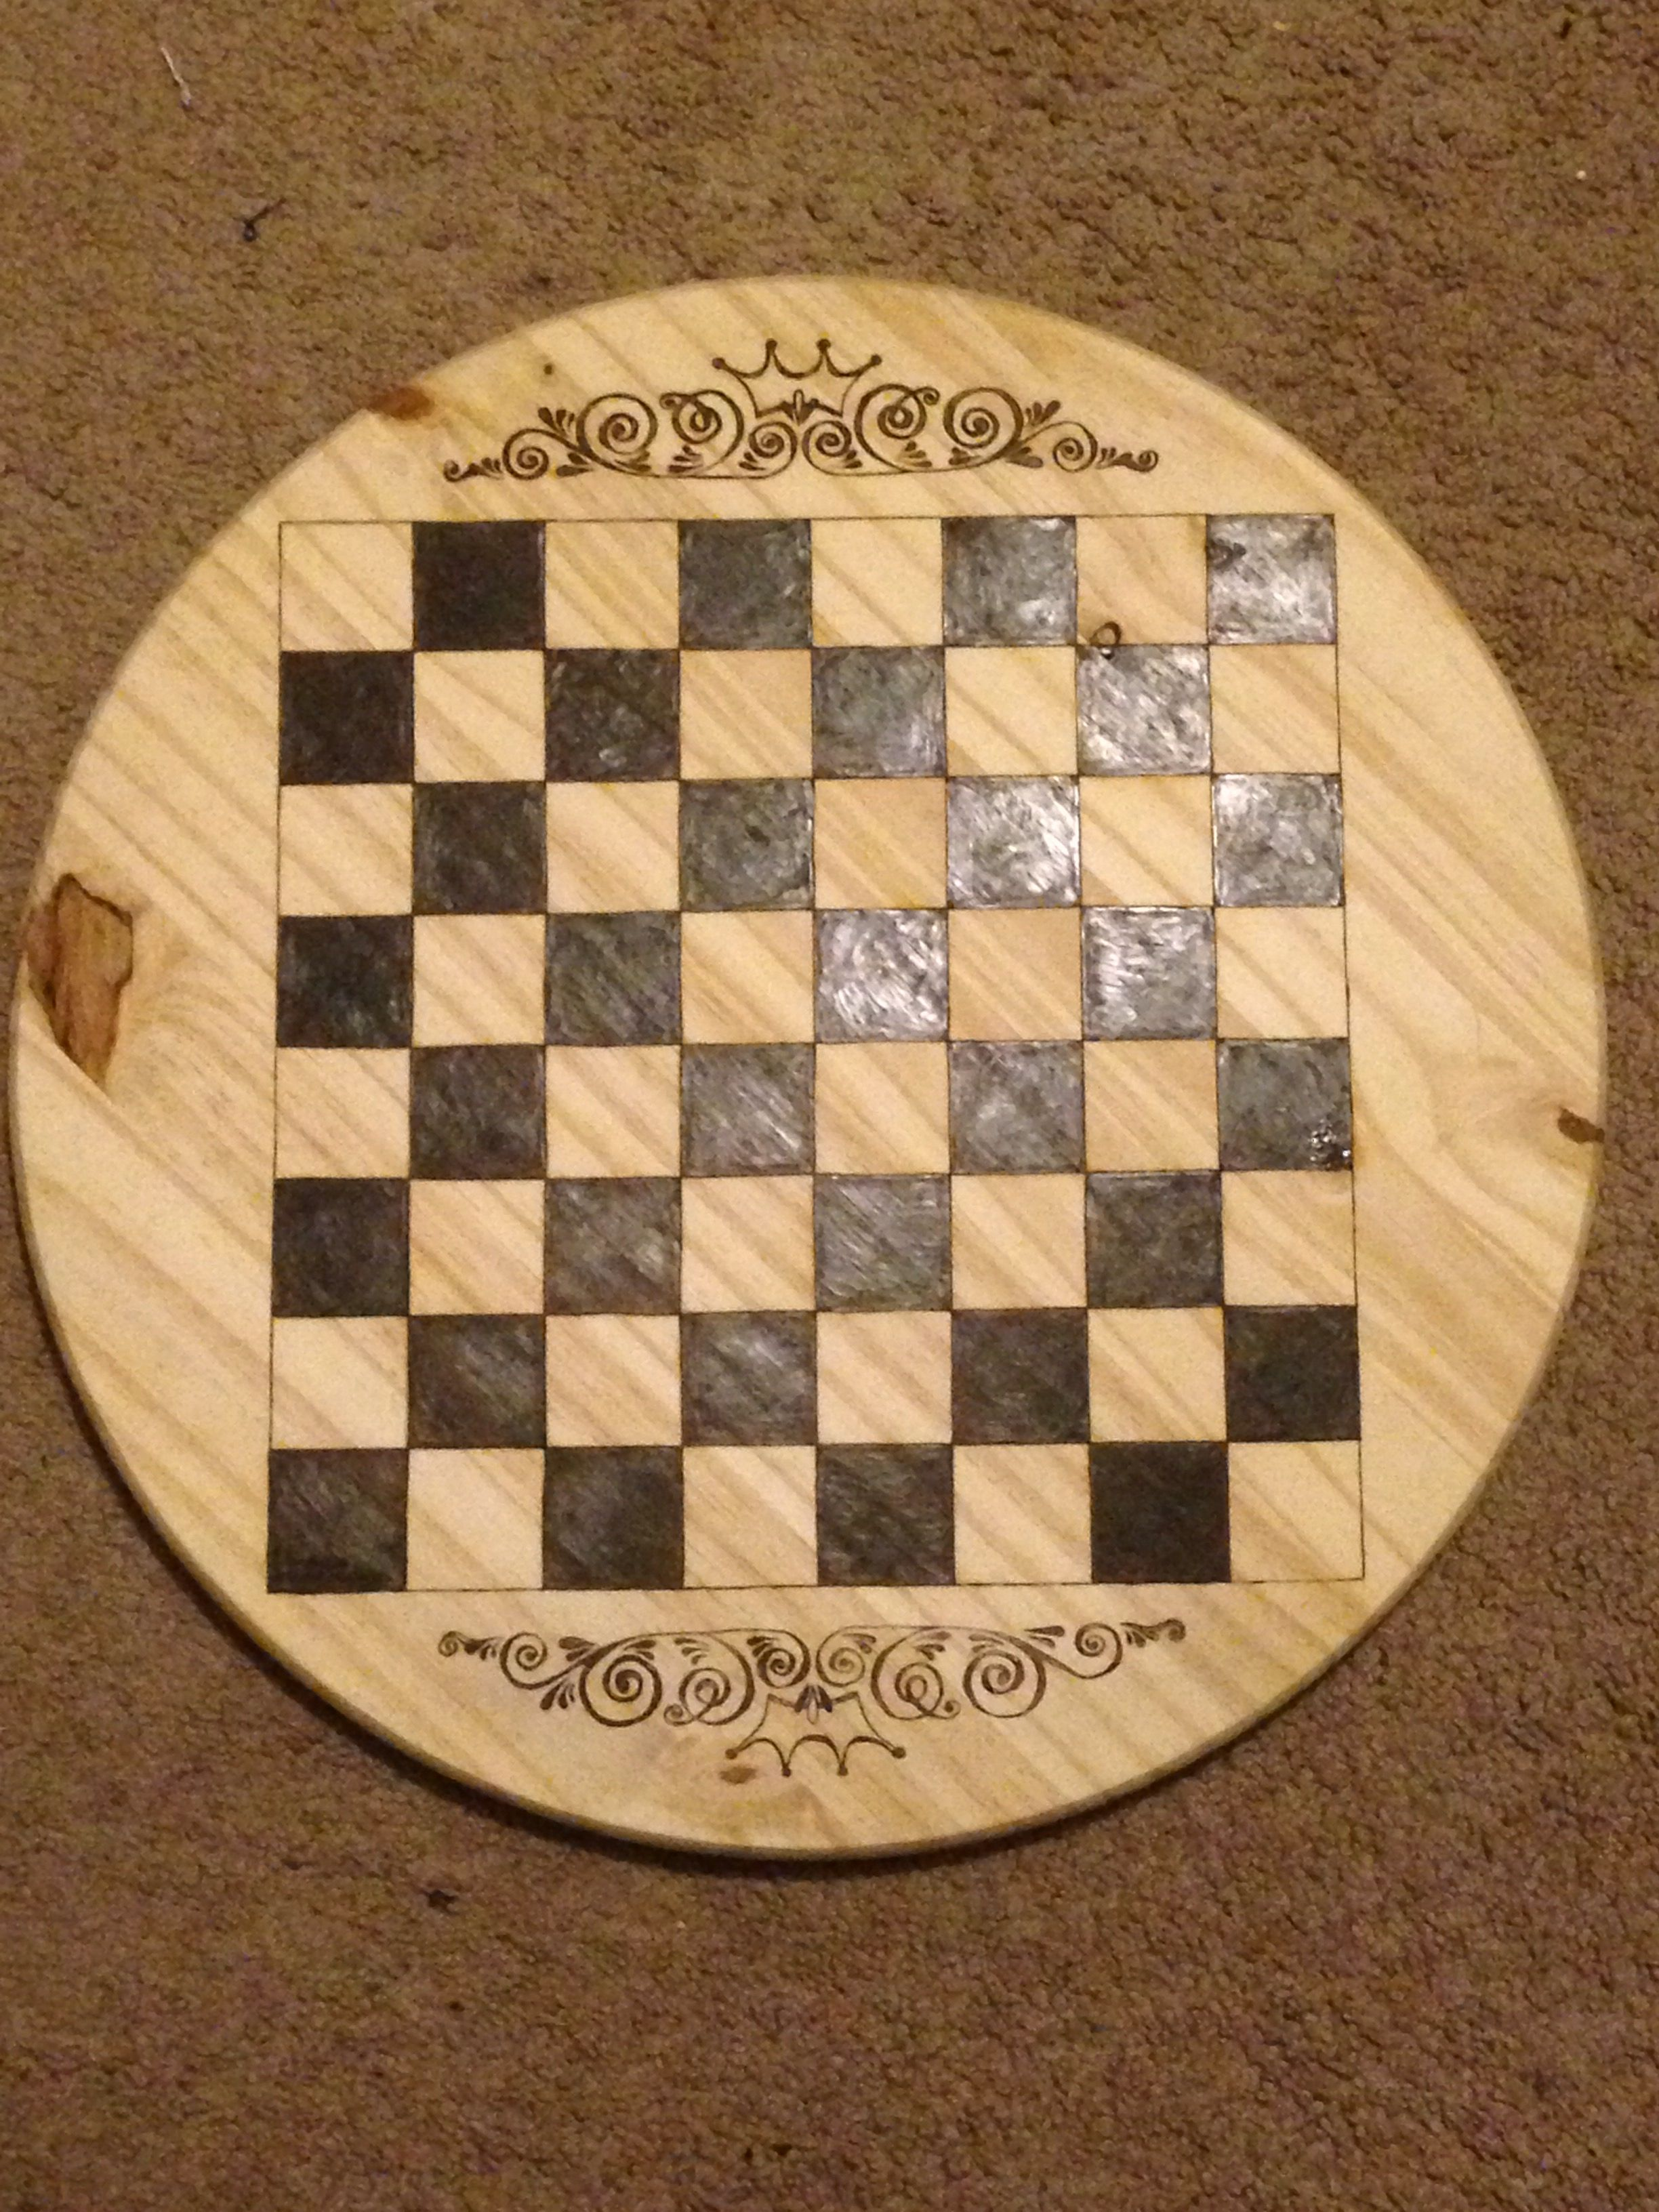 Diy Wood Chess Board Pyrography Chess Board By Jessi Watson Made By Me